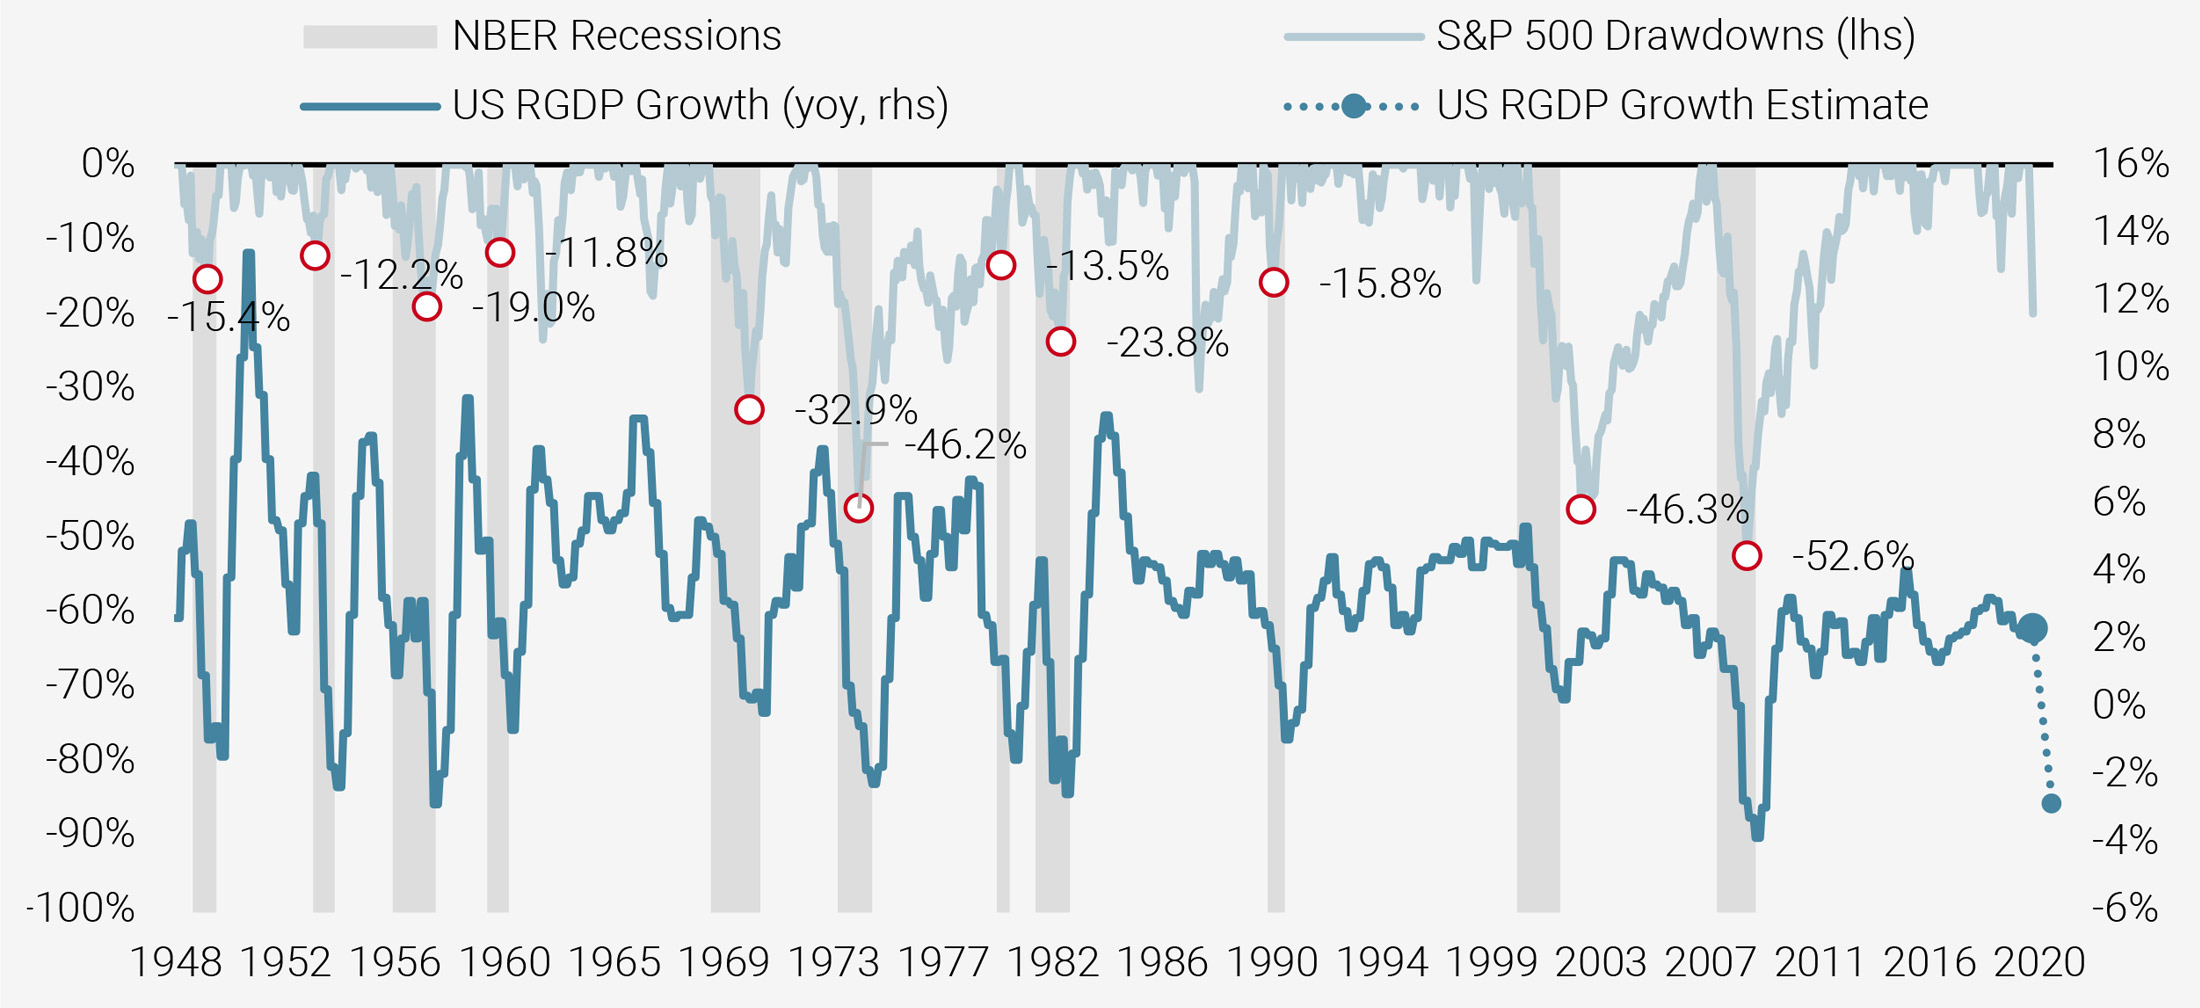 Figure 12: S&P 500 Drawdowns during US Recessions